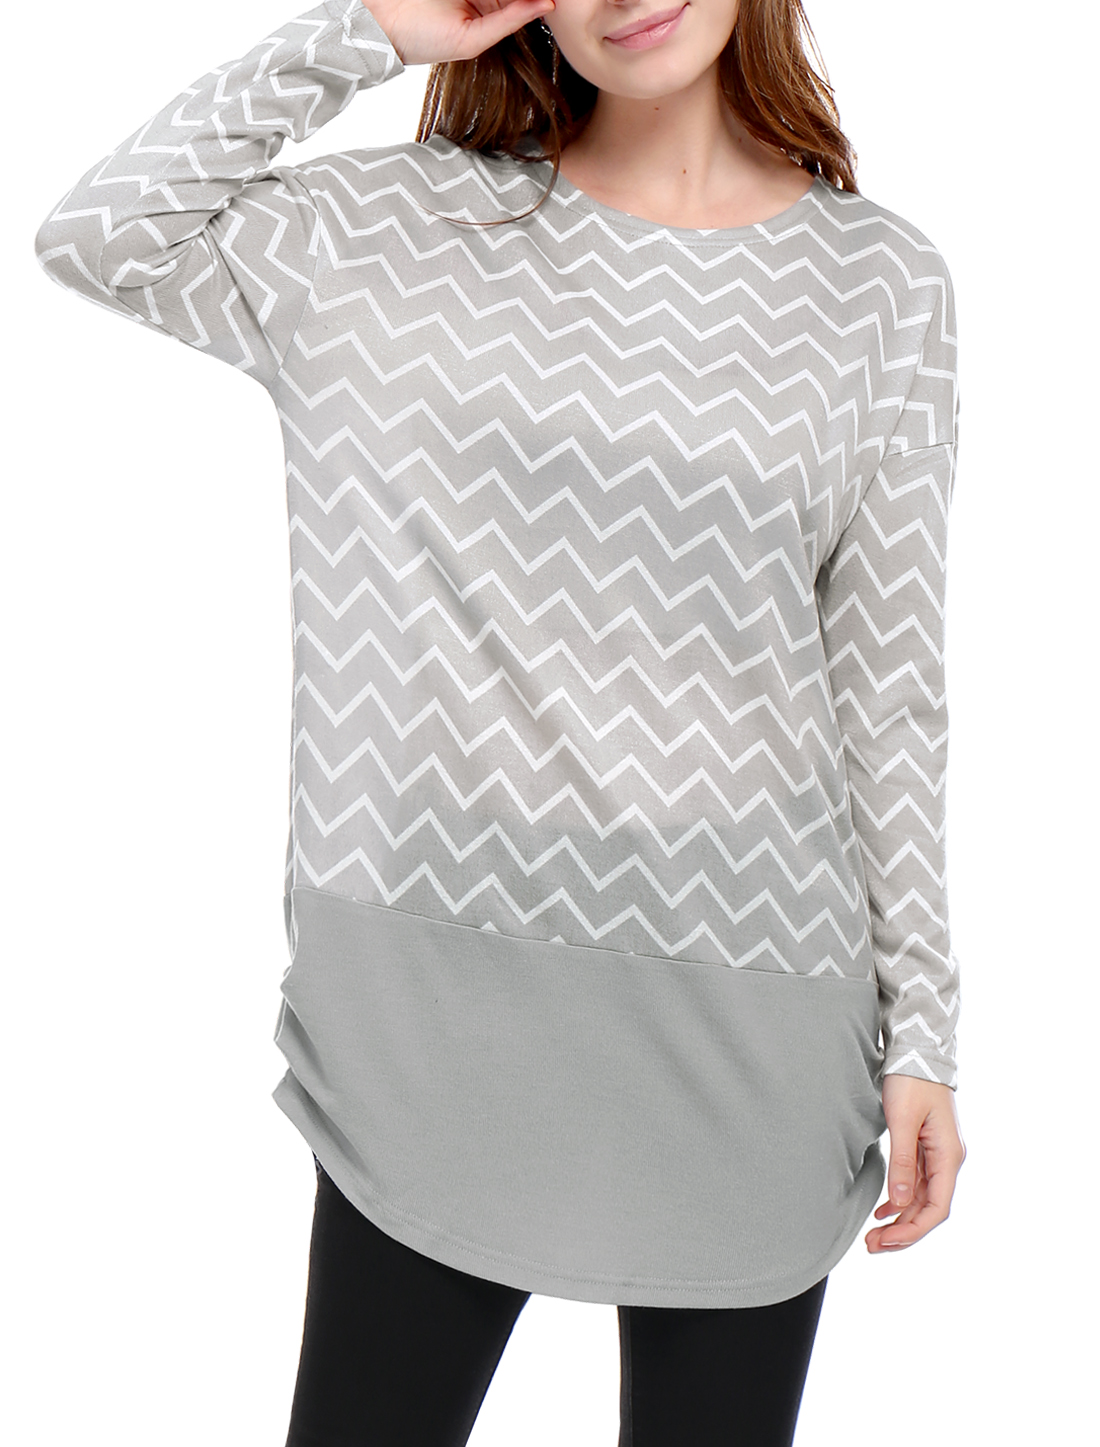 Women Long Sleeves Ruched Sides Chevron Loose Tunic Top Gray M